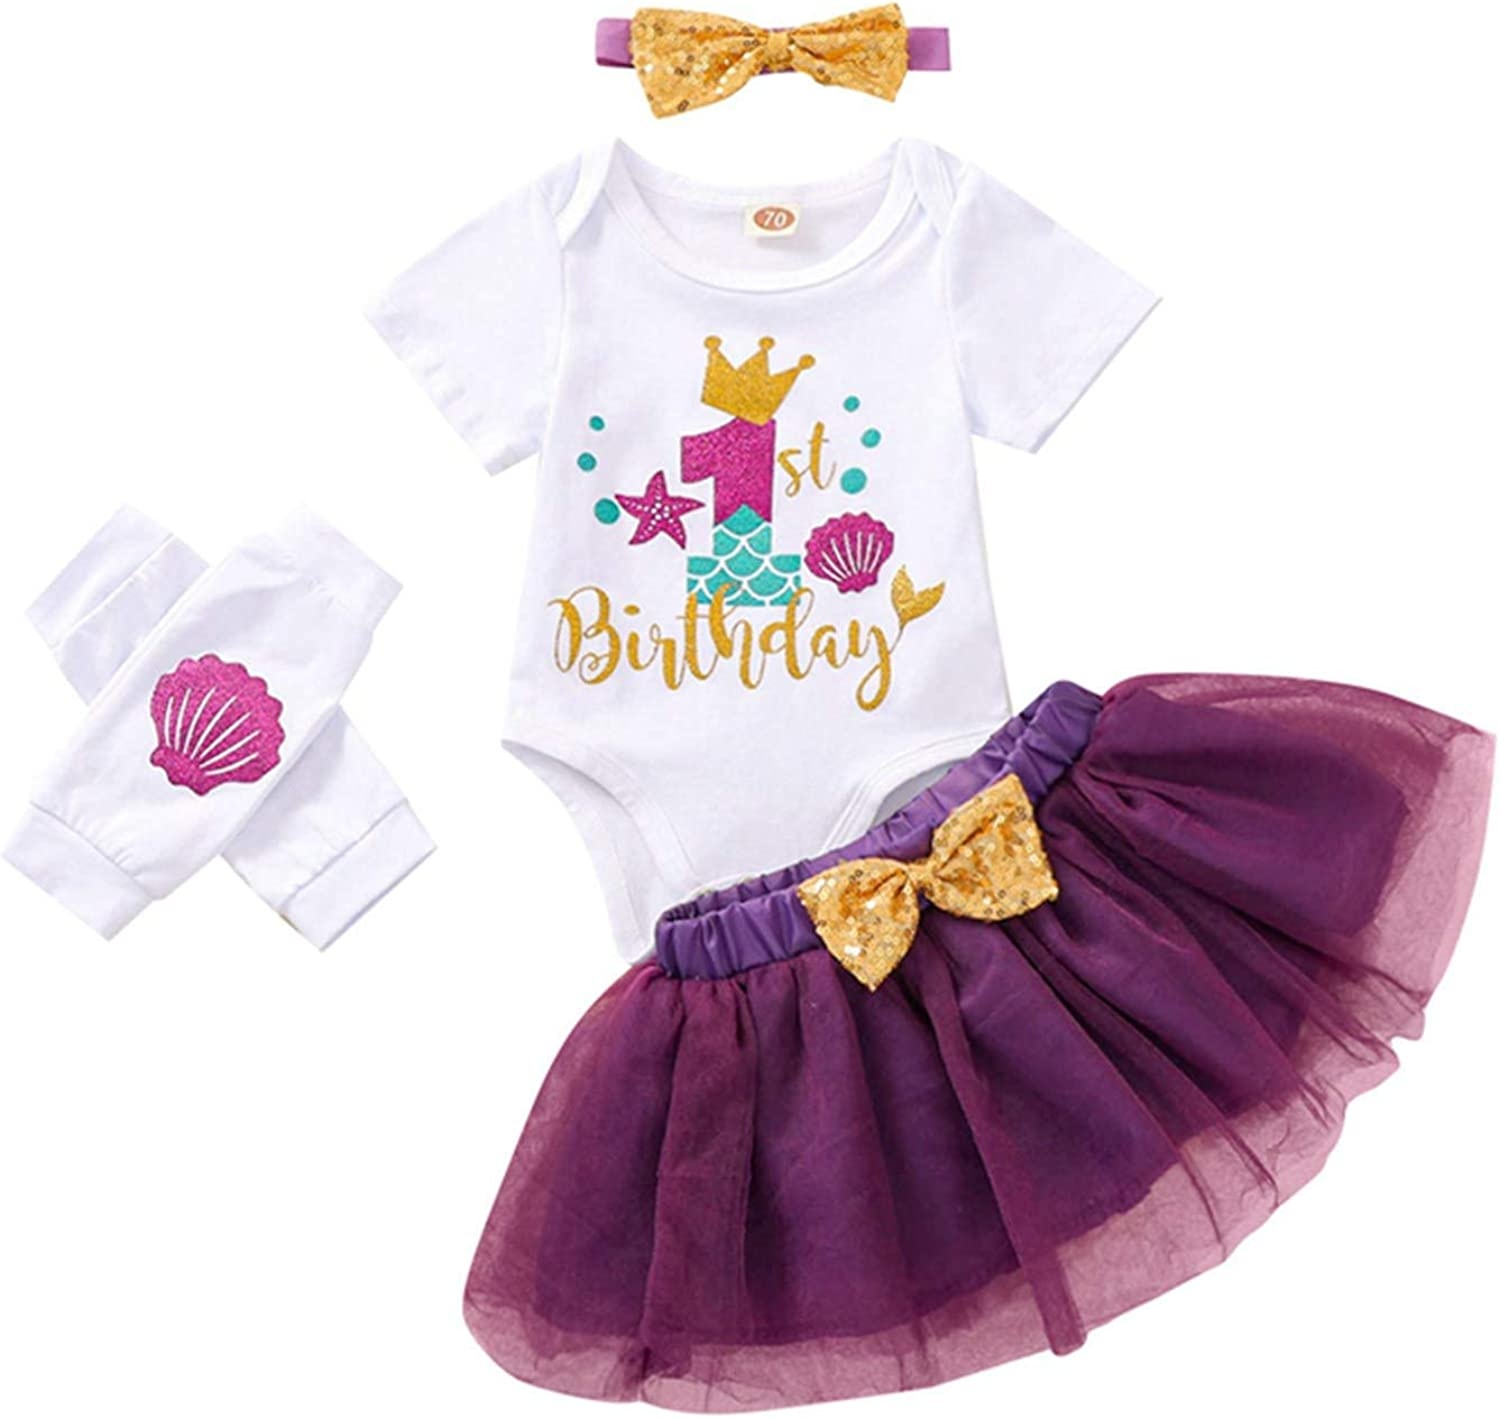 BOWINR Newborn Baby Girl Clothes Letter Outfit Birthday Romper Opening large release sale C store